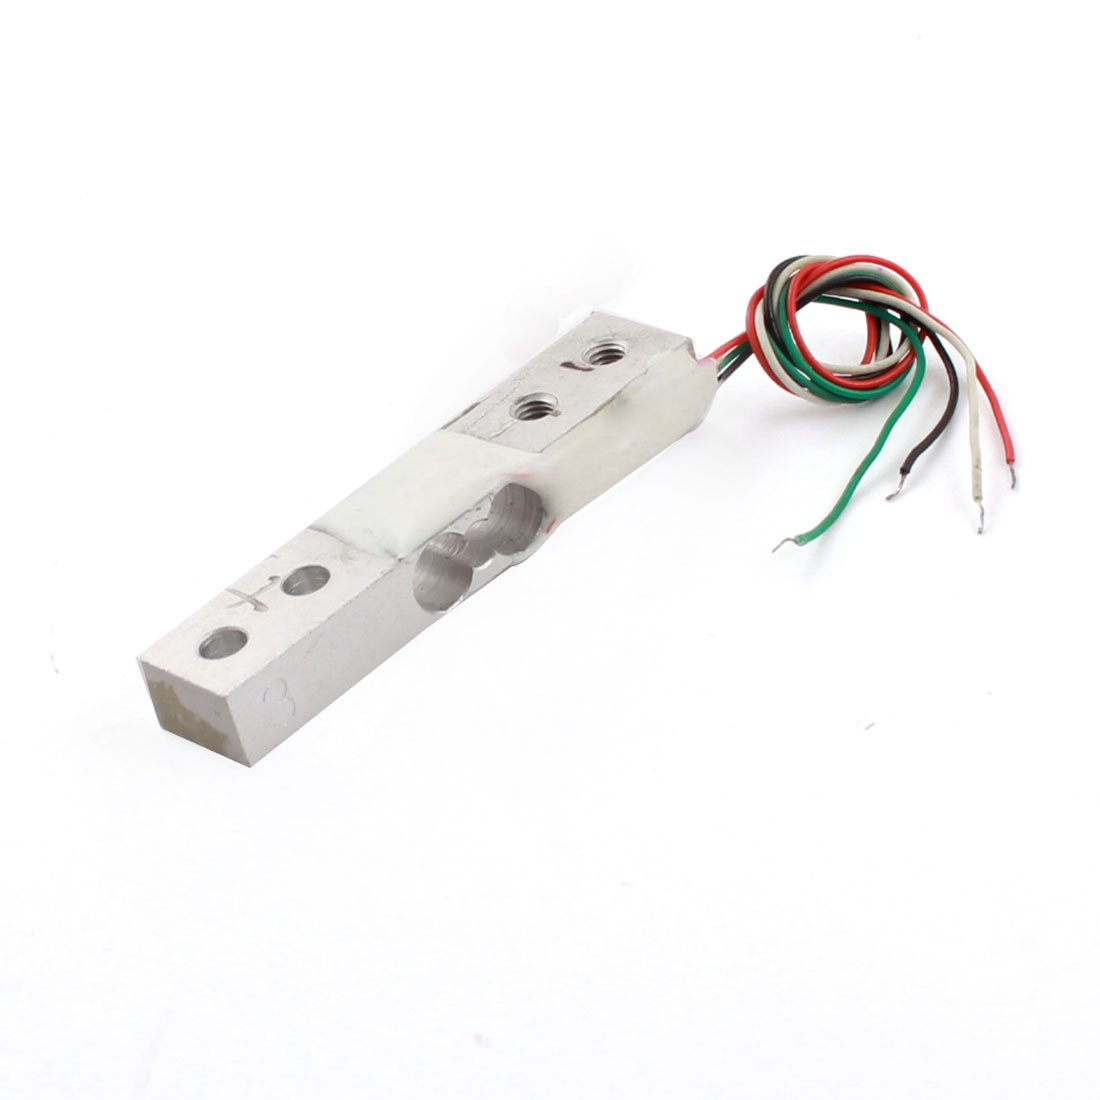 Aexit 300g 4-Wired Rectangle Aluminium Alloy Mini Load Cell Weighting Sensor